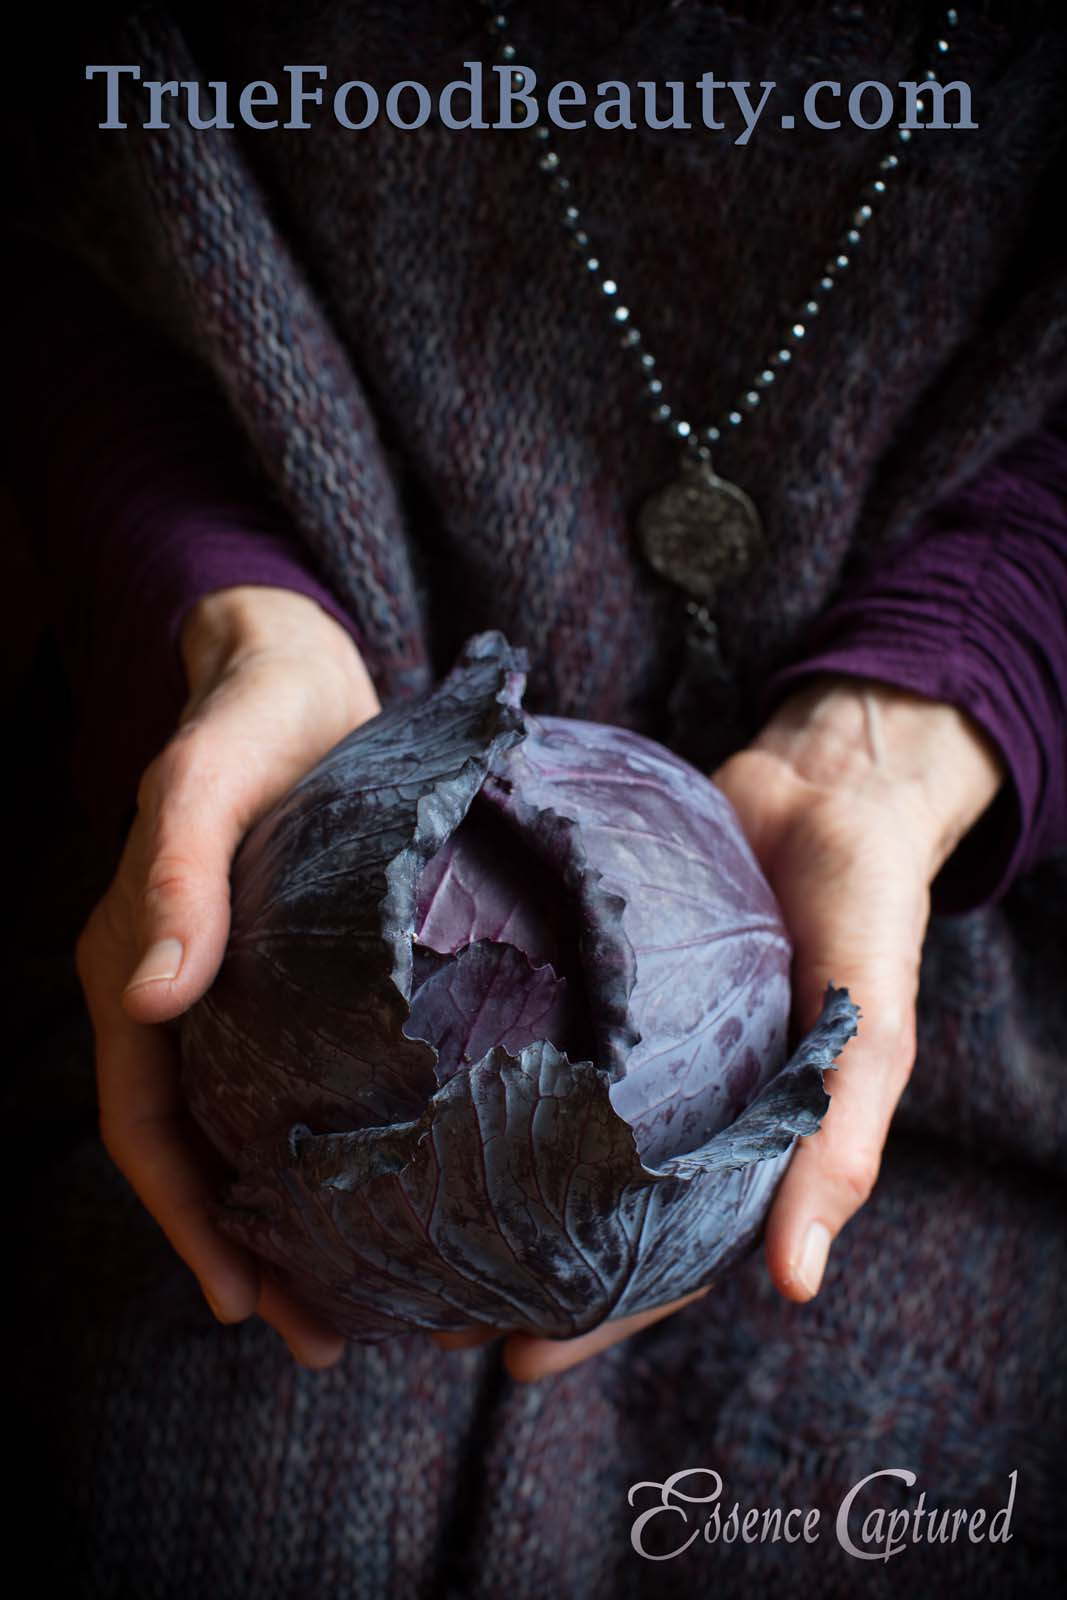 woman hands holding purple cabbage wearing purple clothing